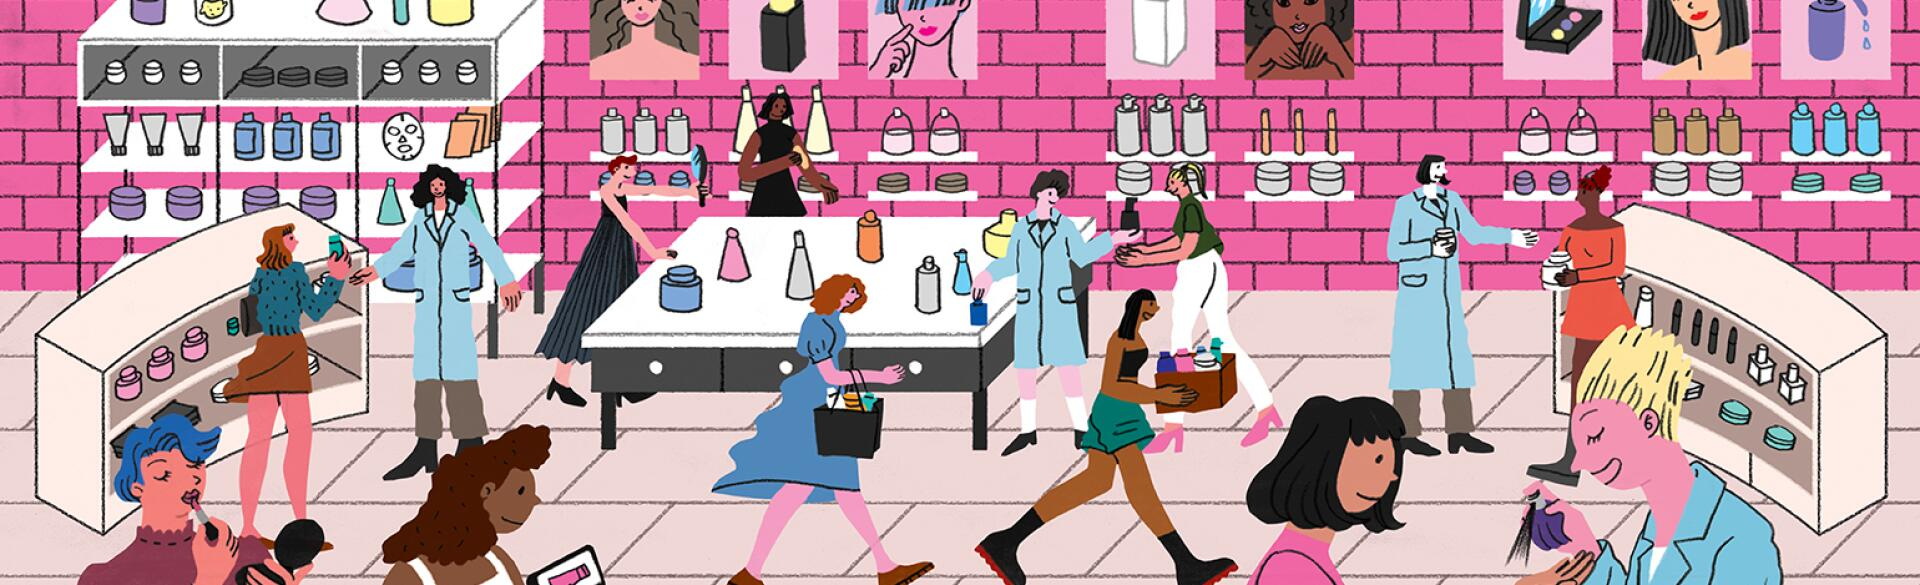 illustration of women in beauty store trying on different products